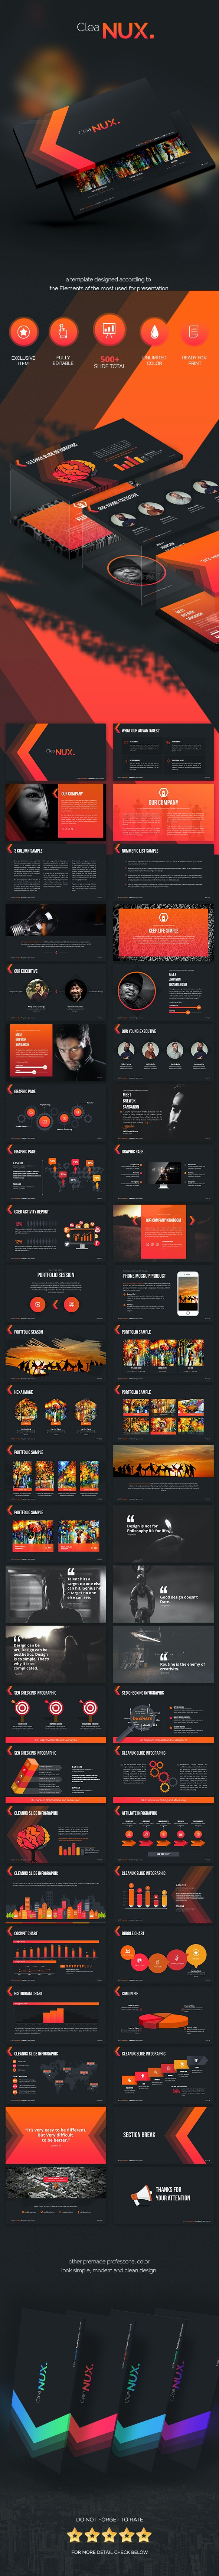 Cleanux - Powerpoint Presentation Template - Creative PowerPoint Templates